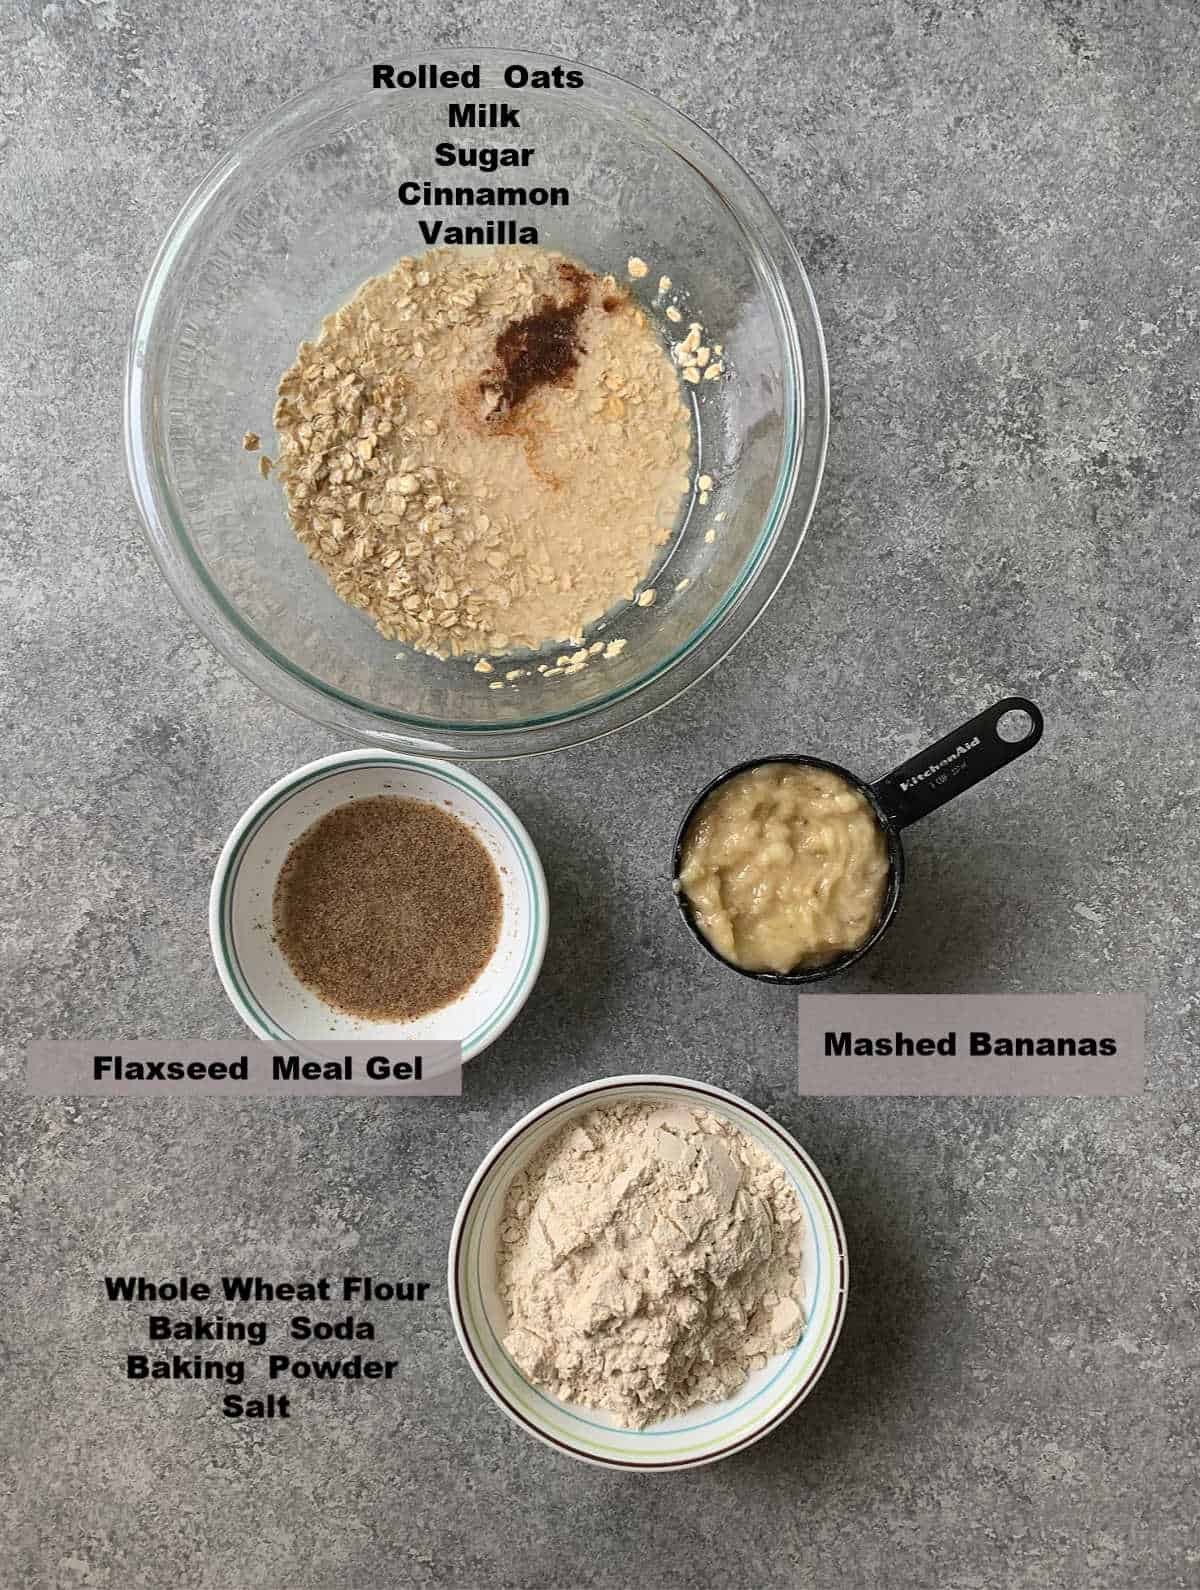 Bowls having ingredients to make vegan banana muffins